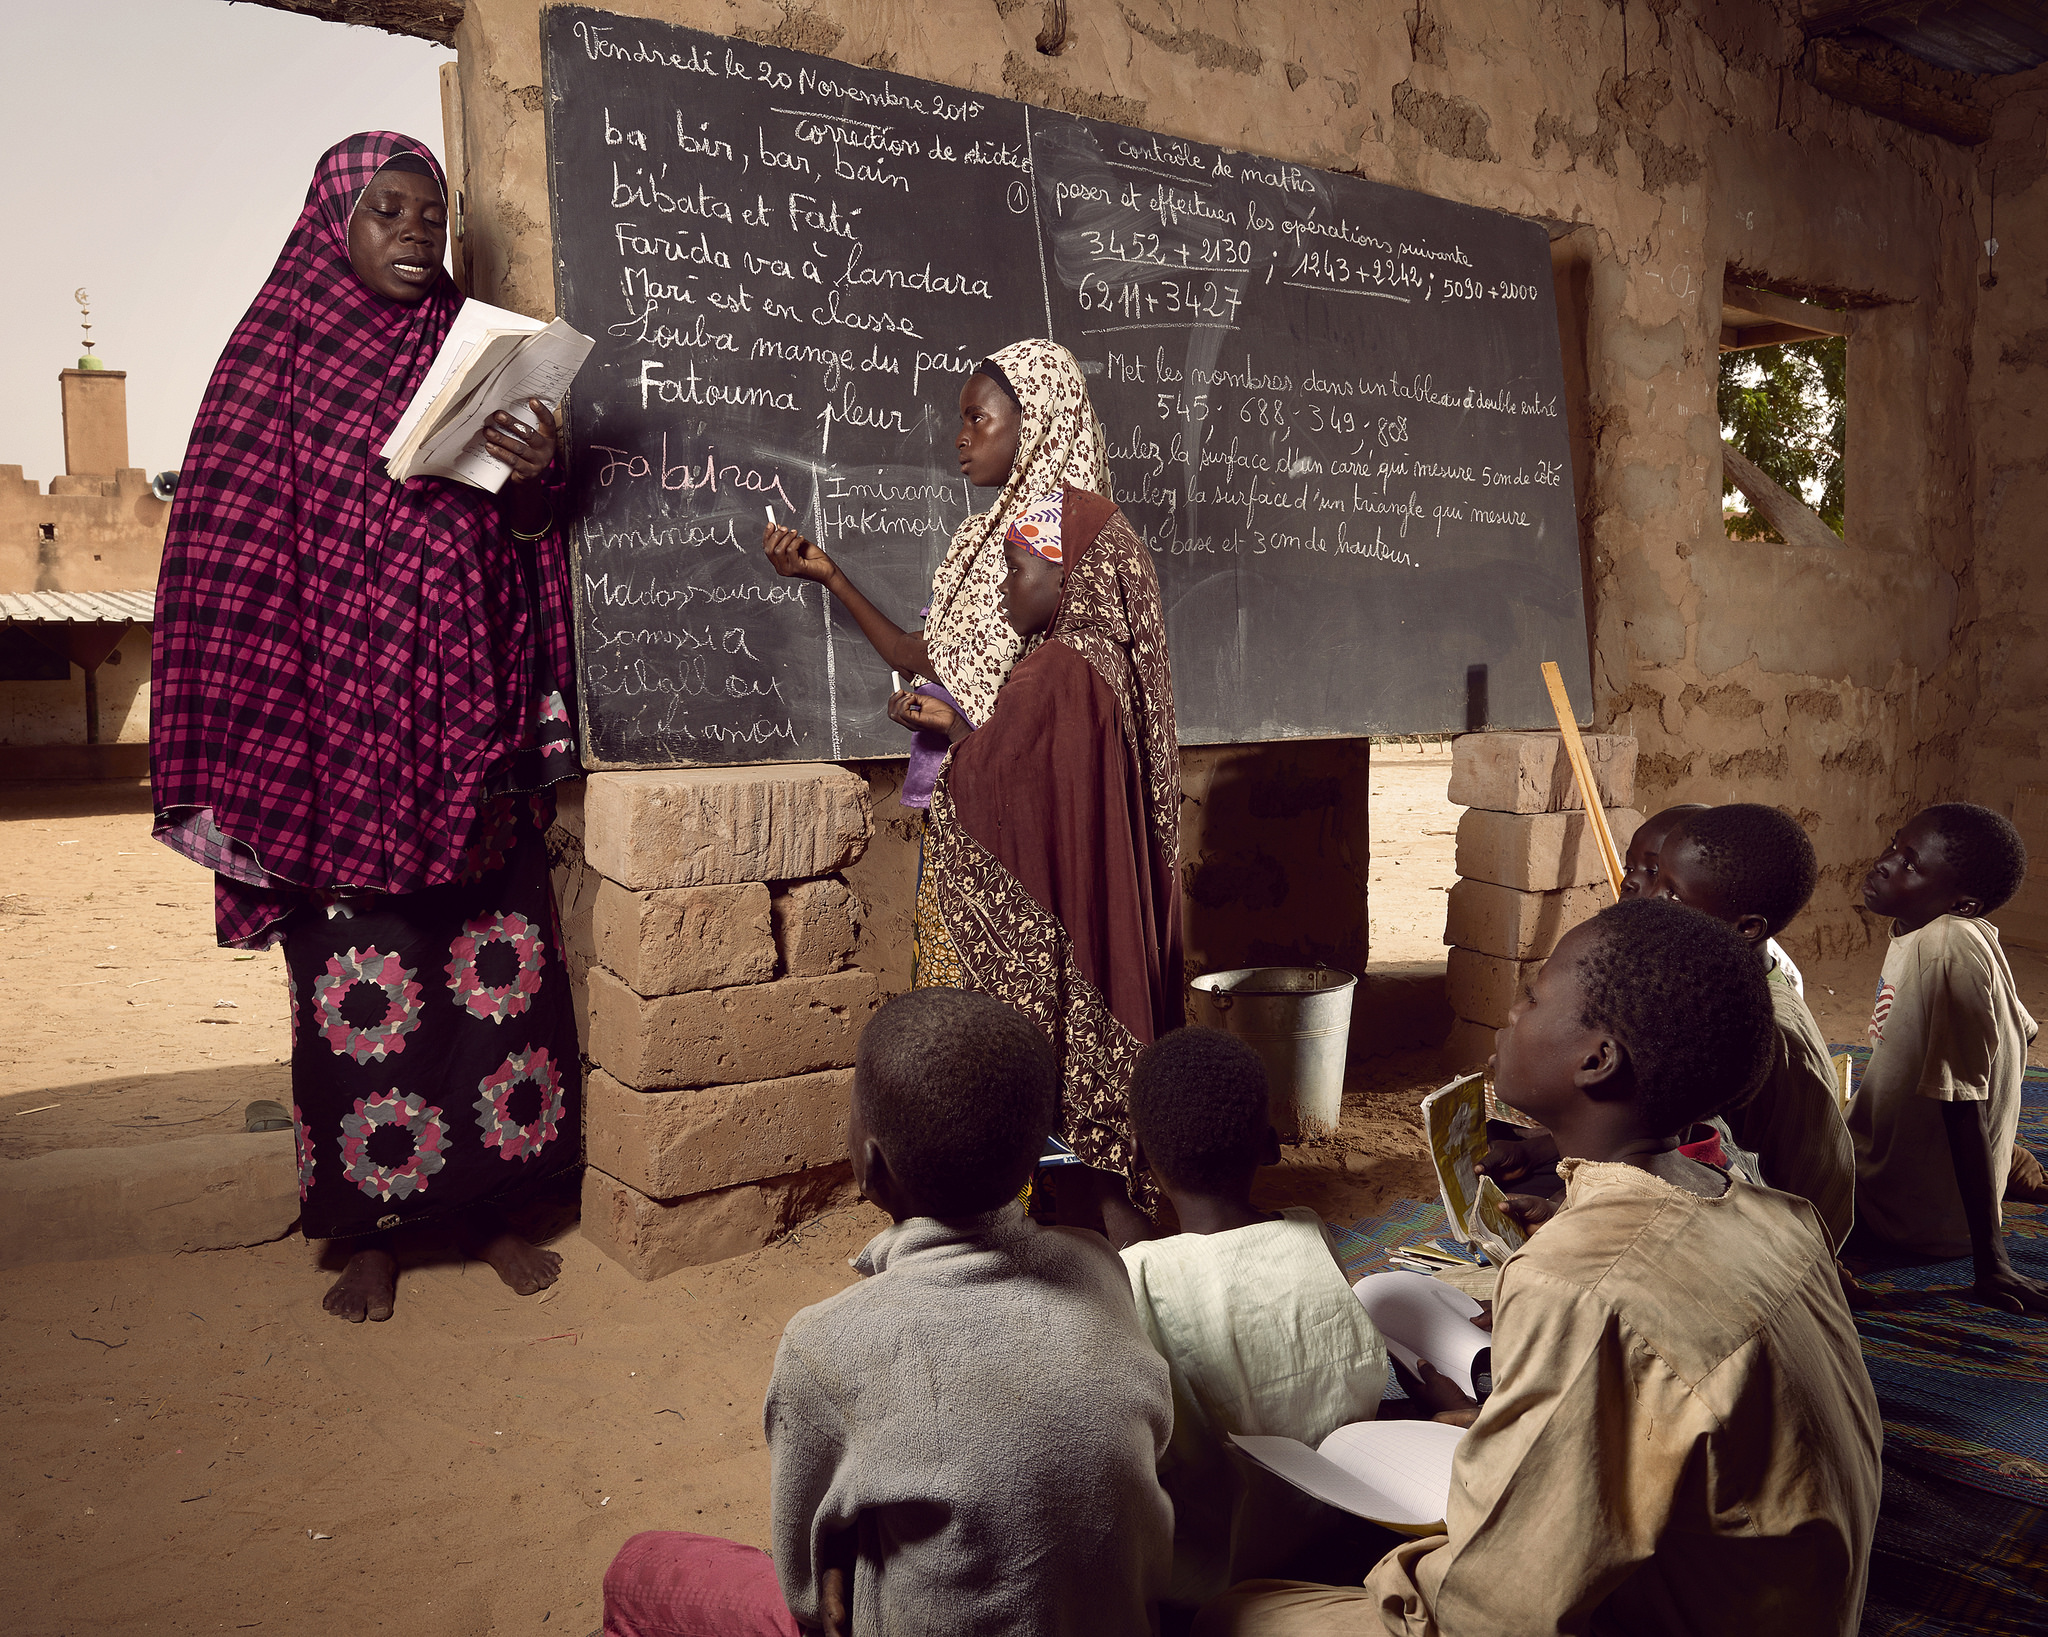 Children in the village of Guéchémé use a omen's prayer space to pursue their studies while a new school is being built, World Bank Photo Collection, Flickr